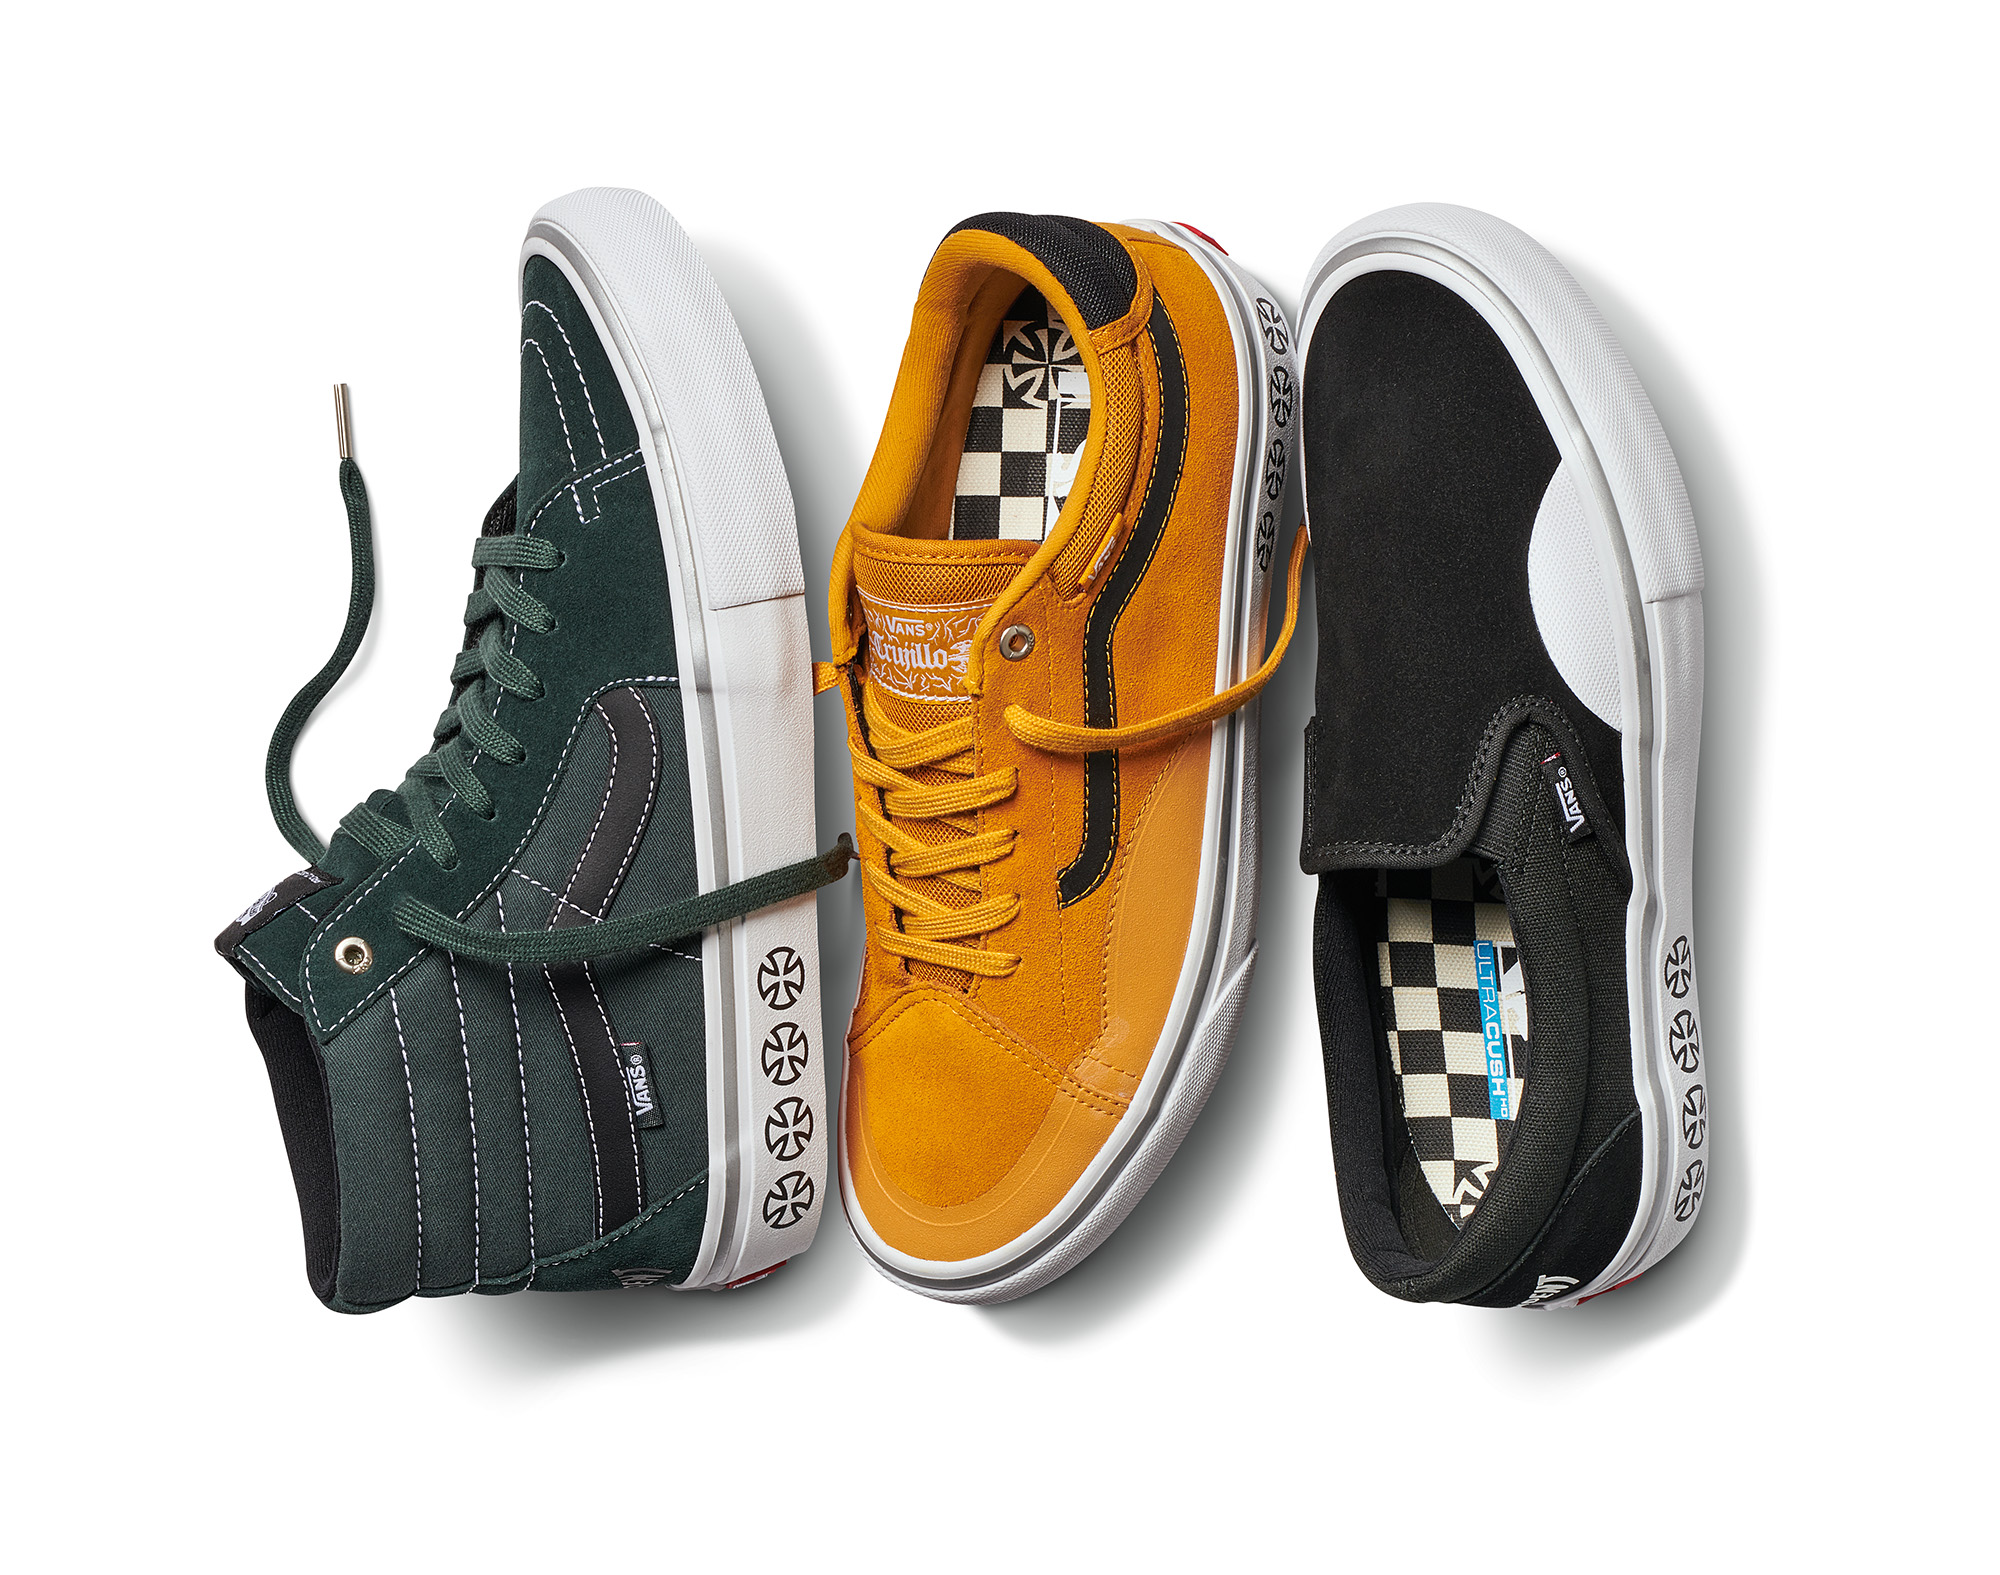 First Look: Vans x Independent Truck Co. Release New